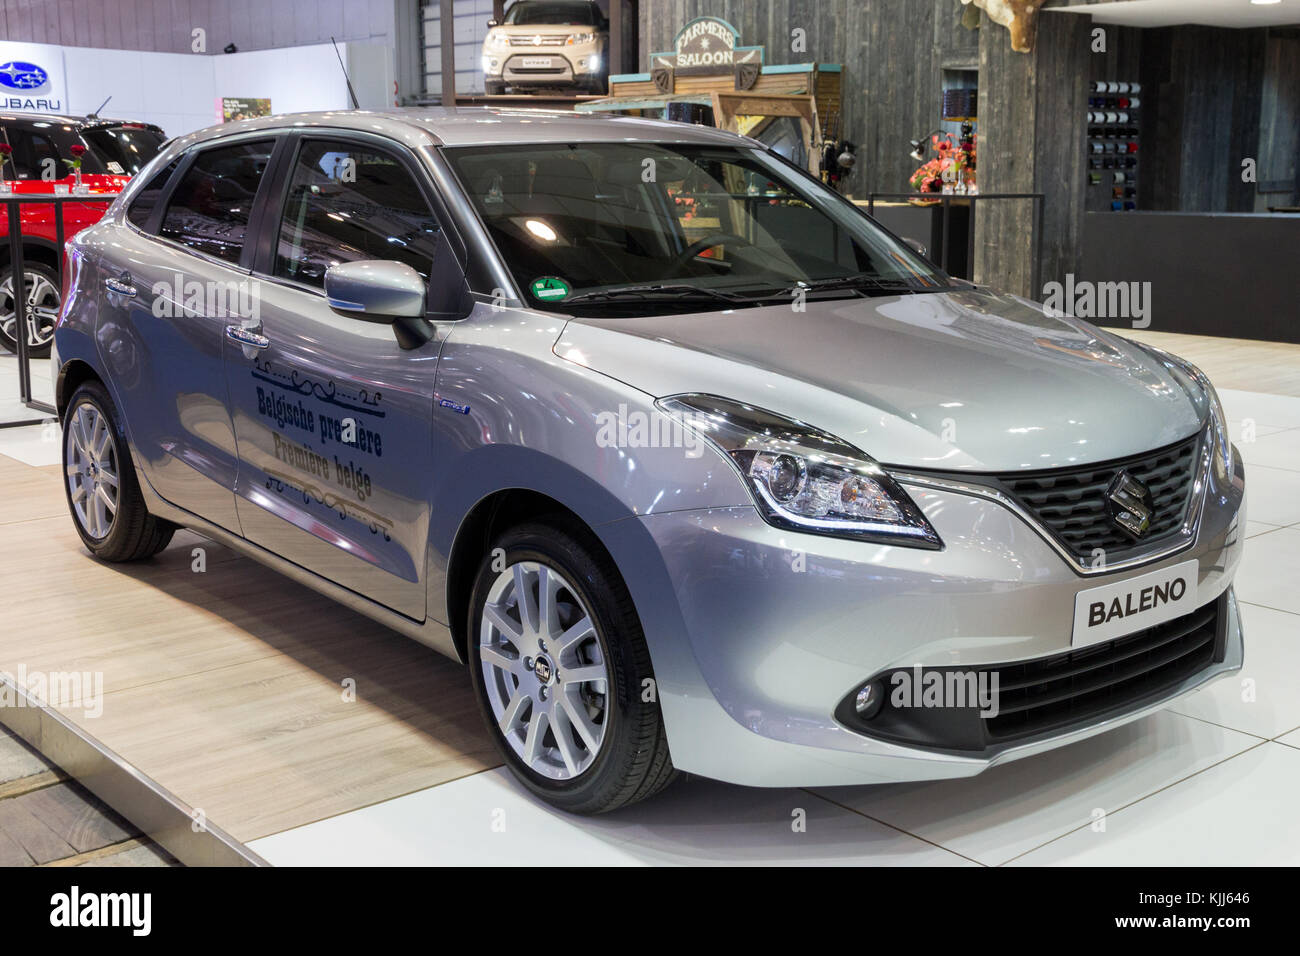 BRUSSELS - JAN 12, 2016: Suzuki Baleno compact car showcased at the Brussels Motor Show. - Stock Image